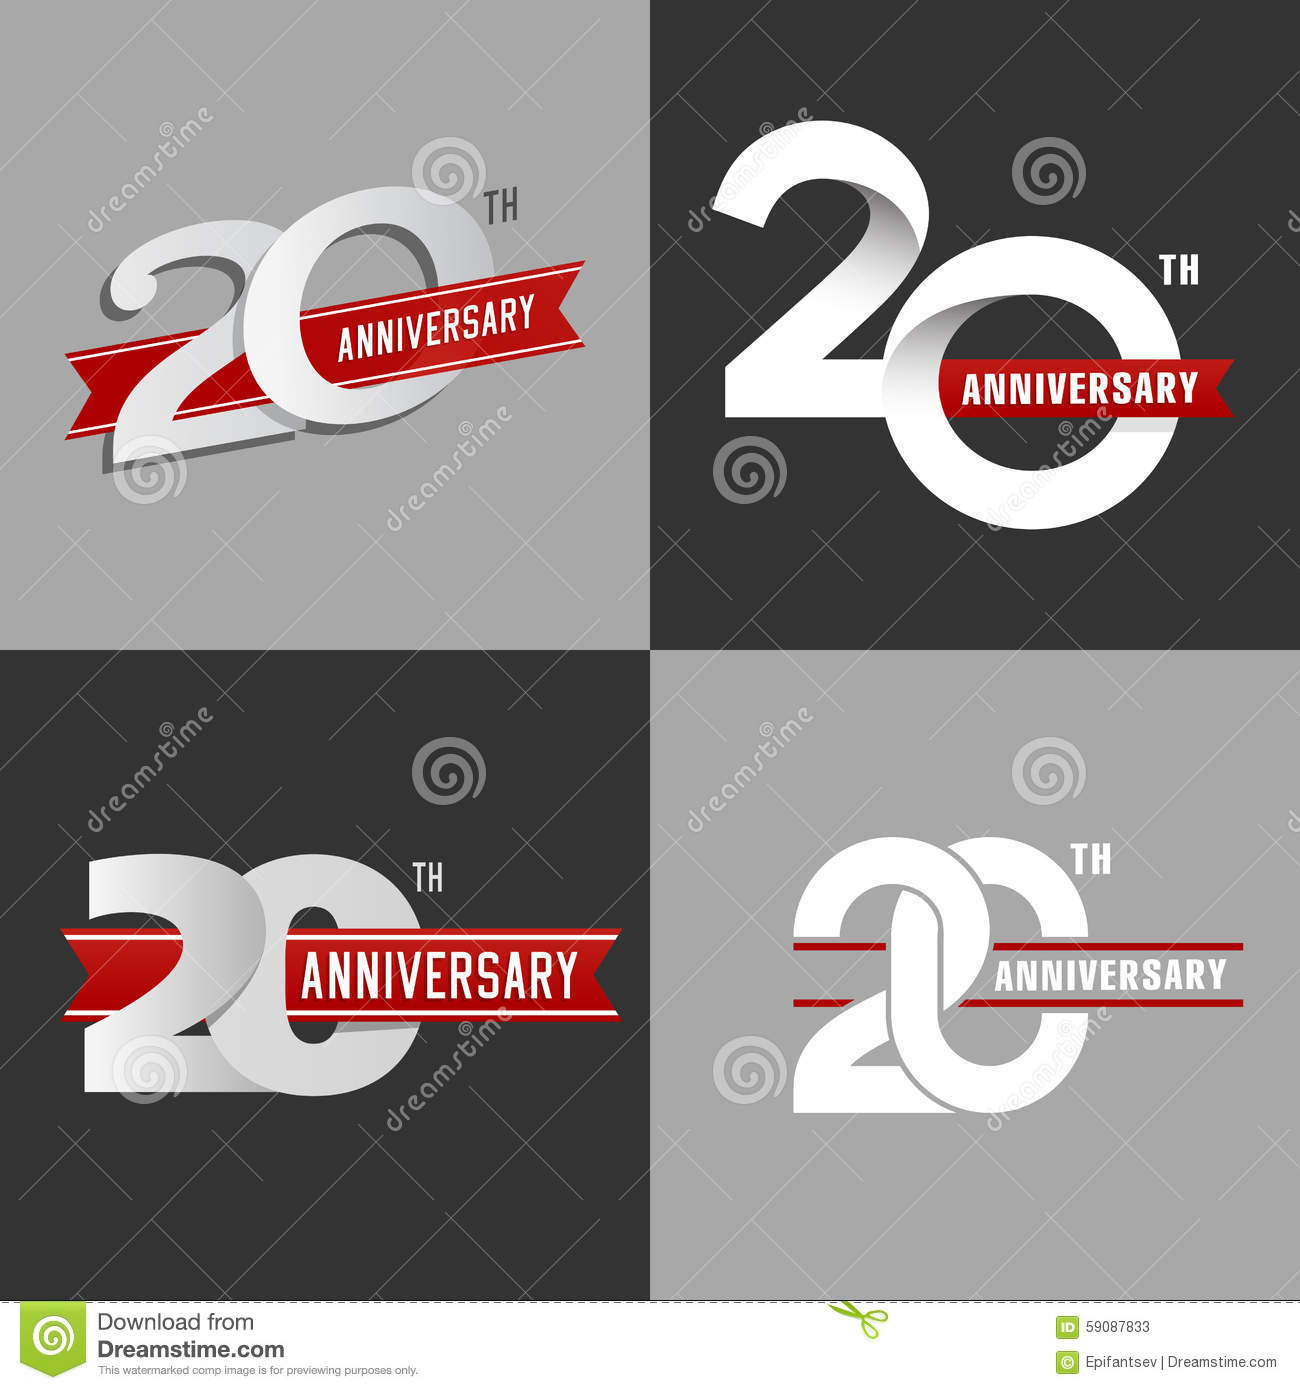 The set of 20th anniversary signs.